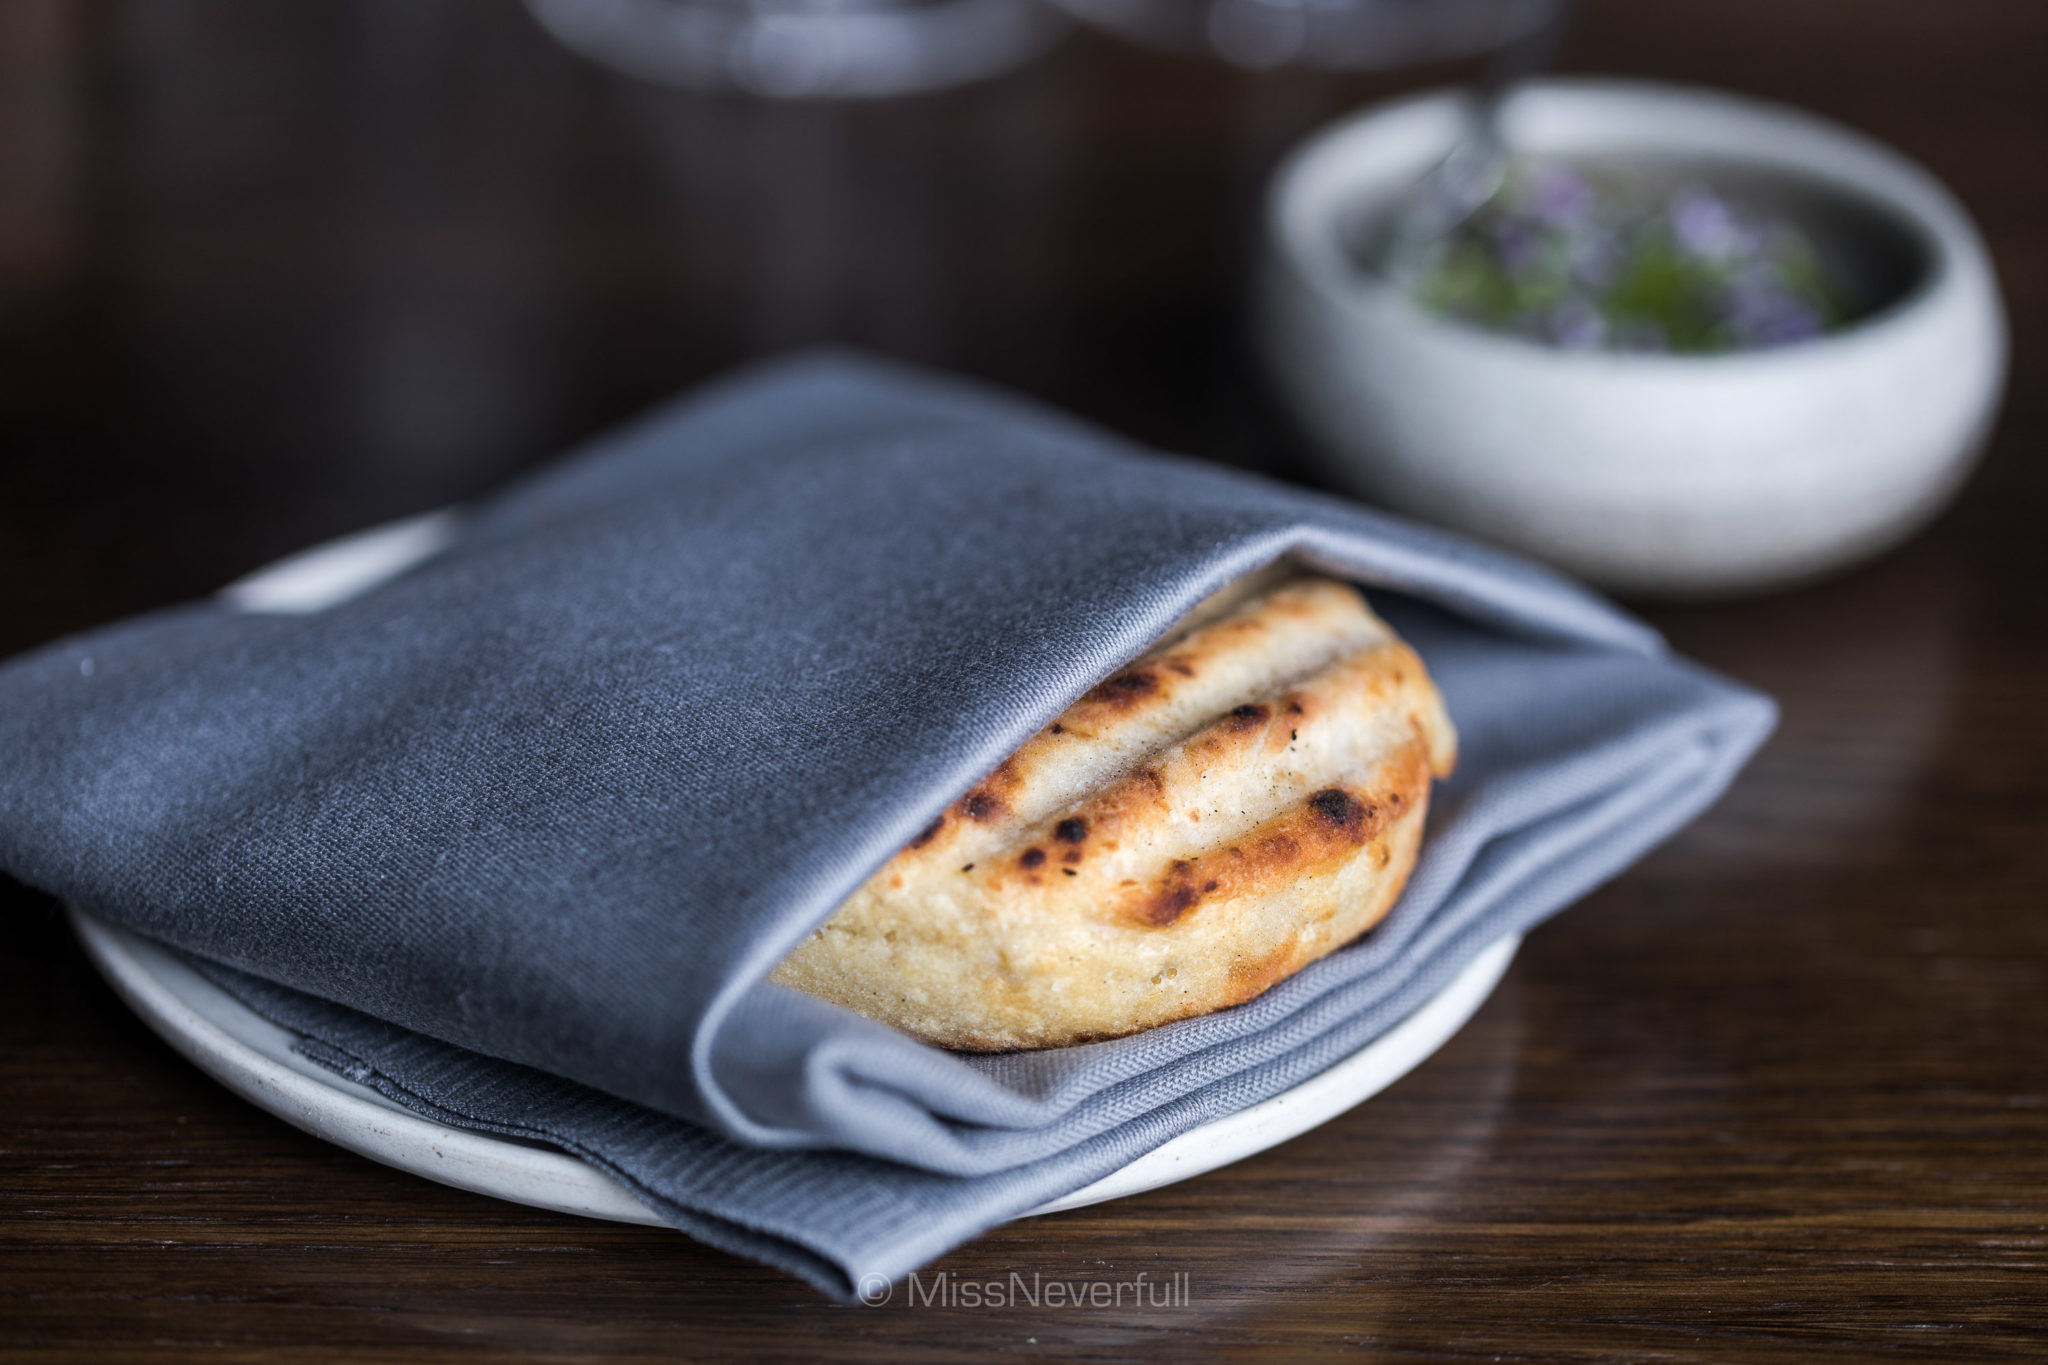 Grilled potato bread